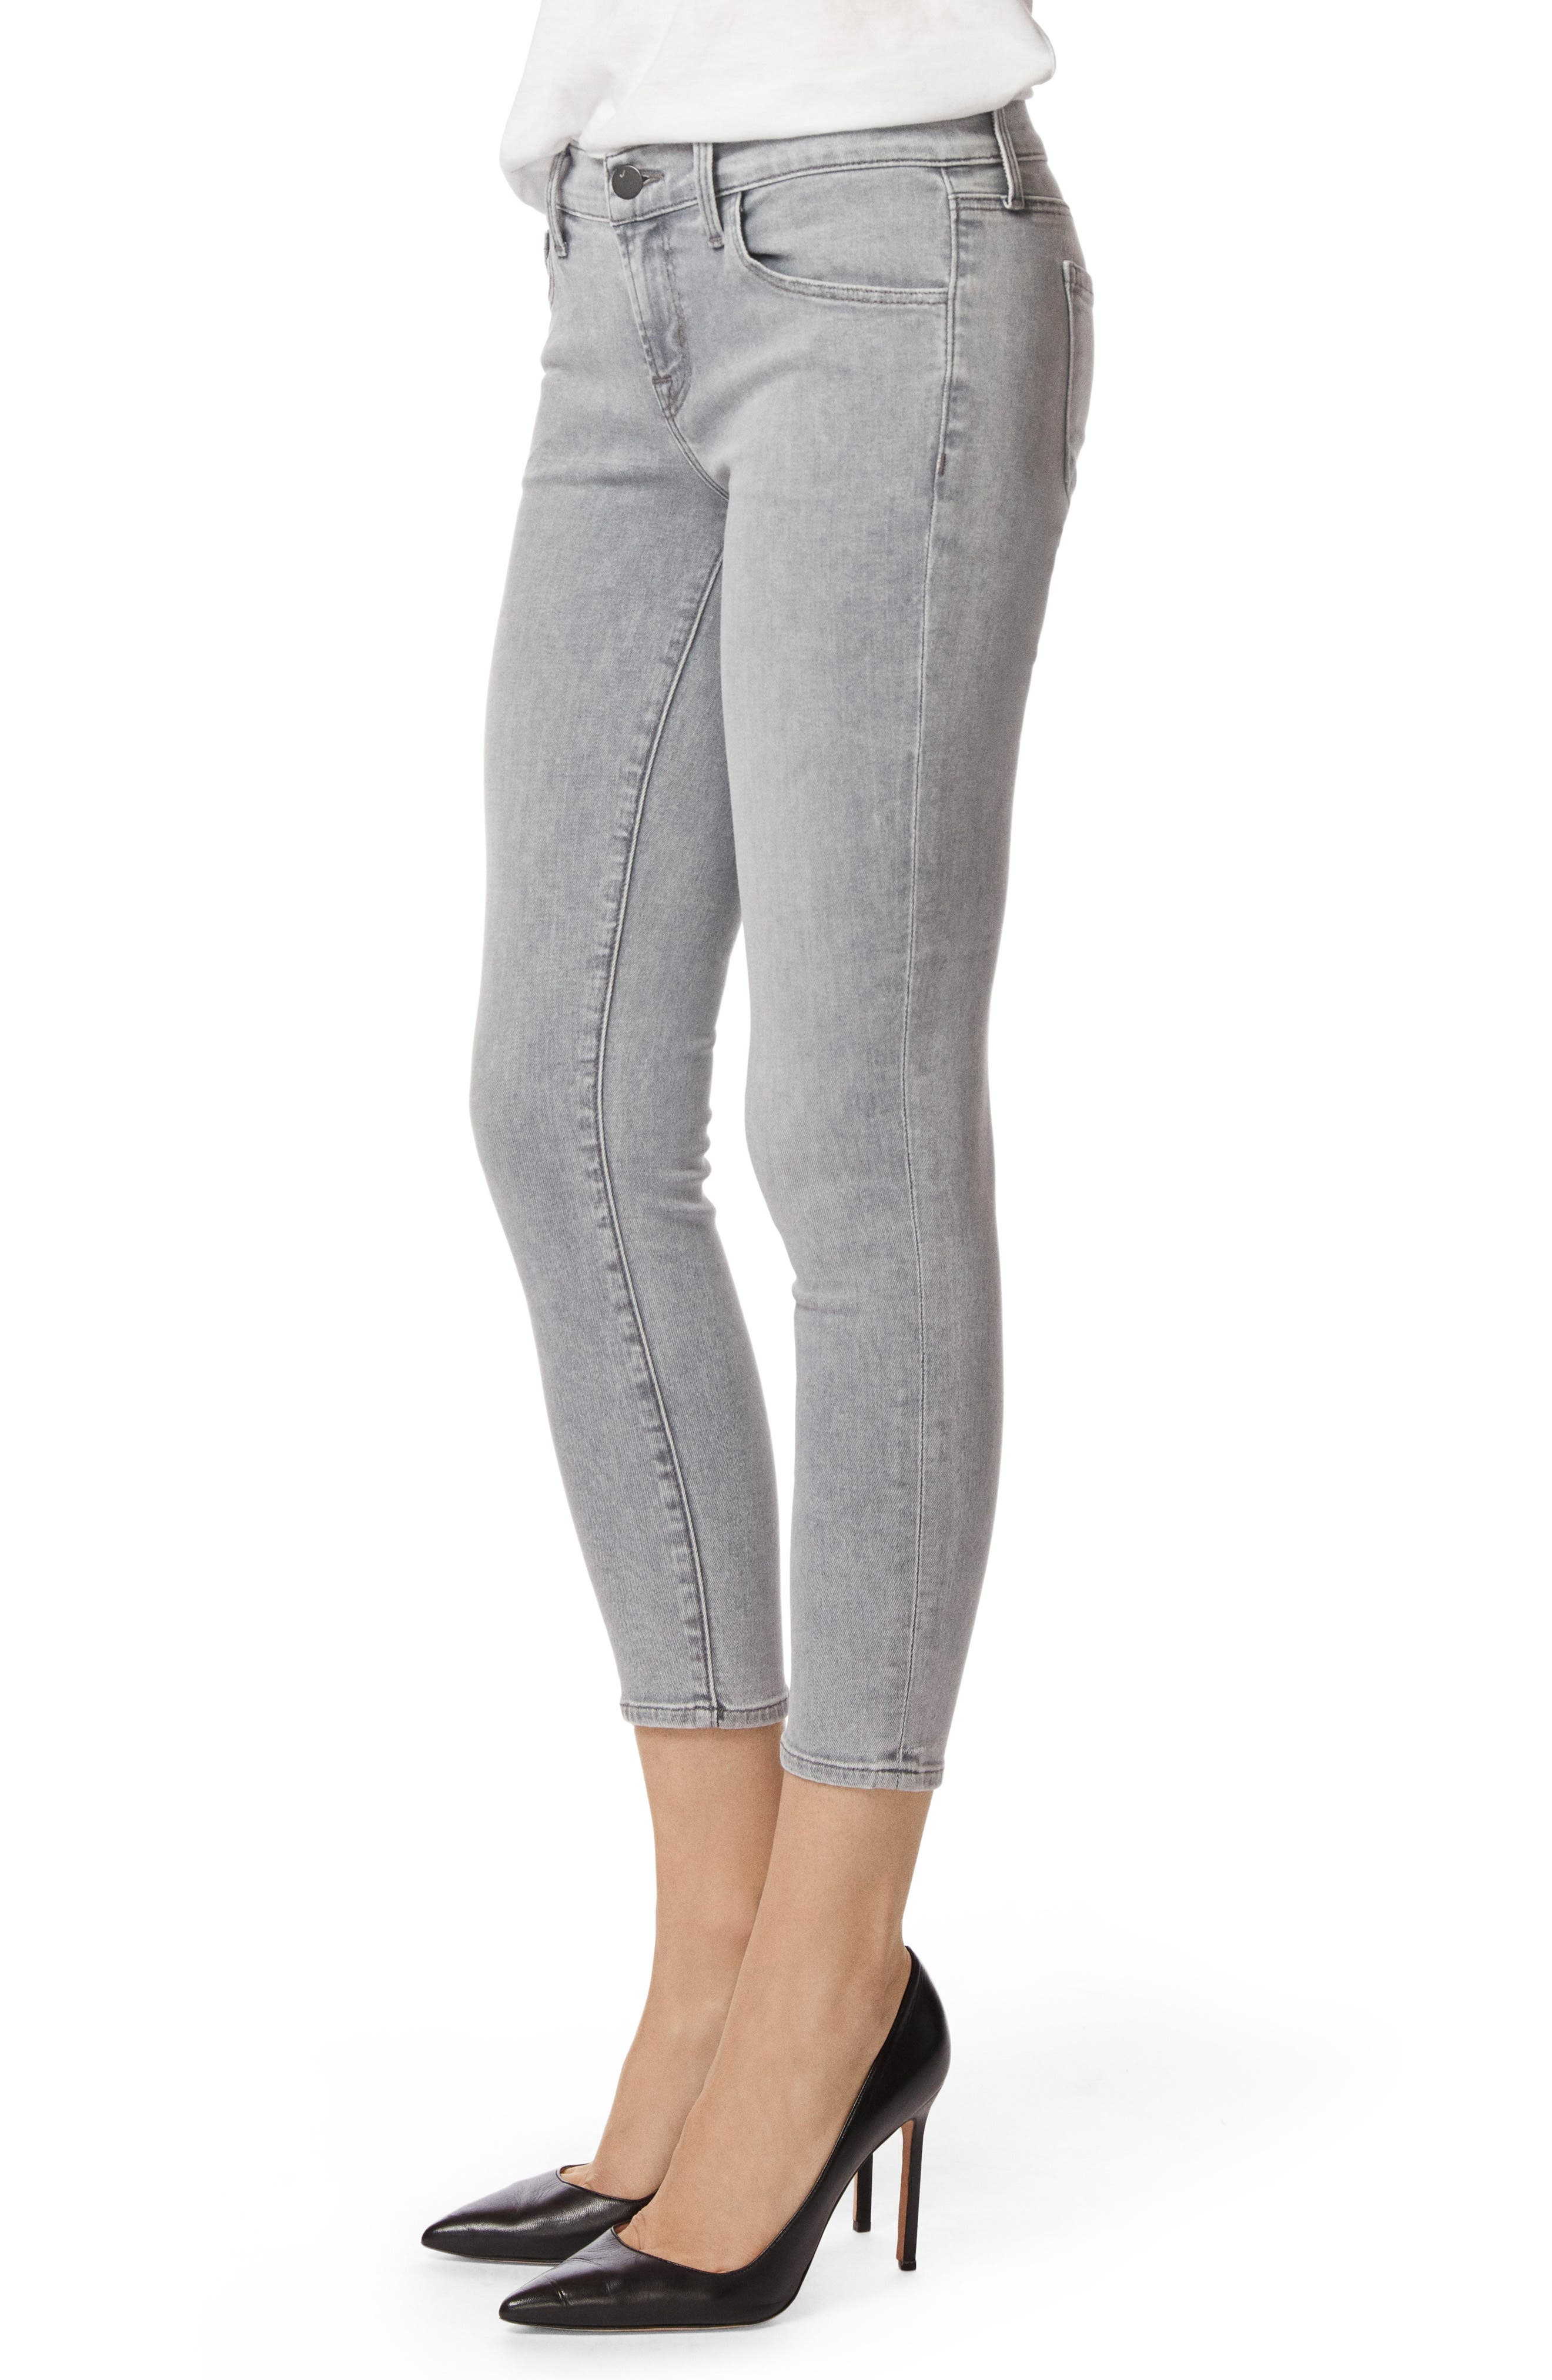 9326 Low Rise Crop Skinny Jeans,                             Alternate thumbnail 3, color,                             010